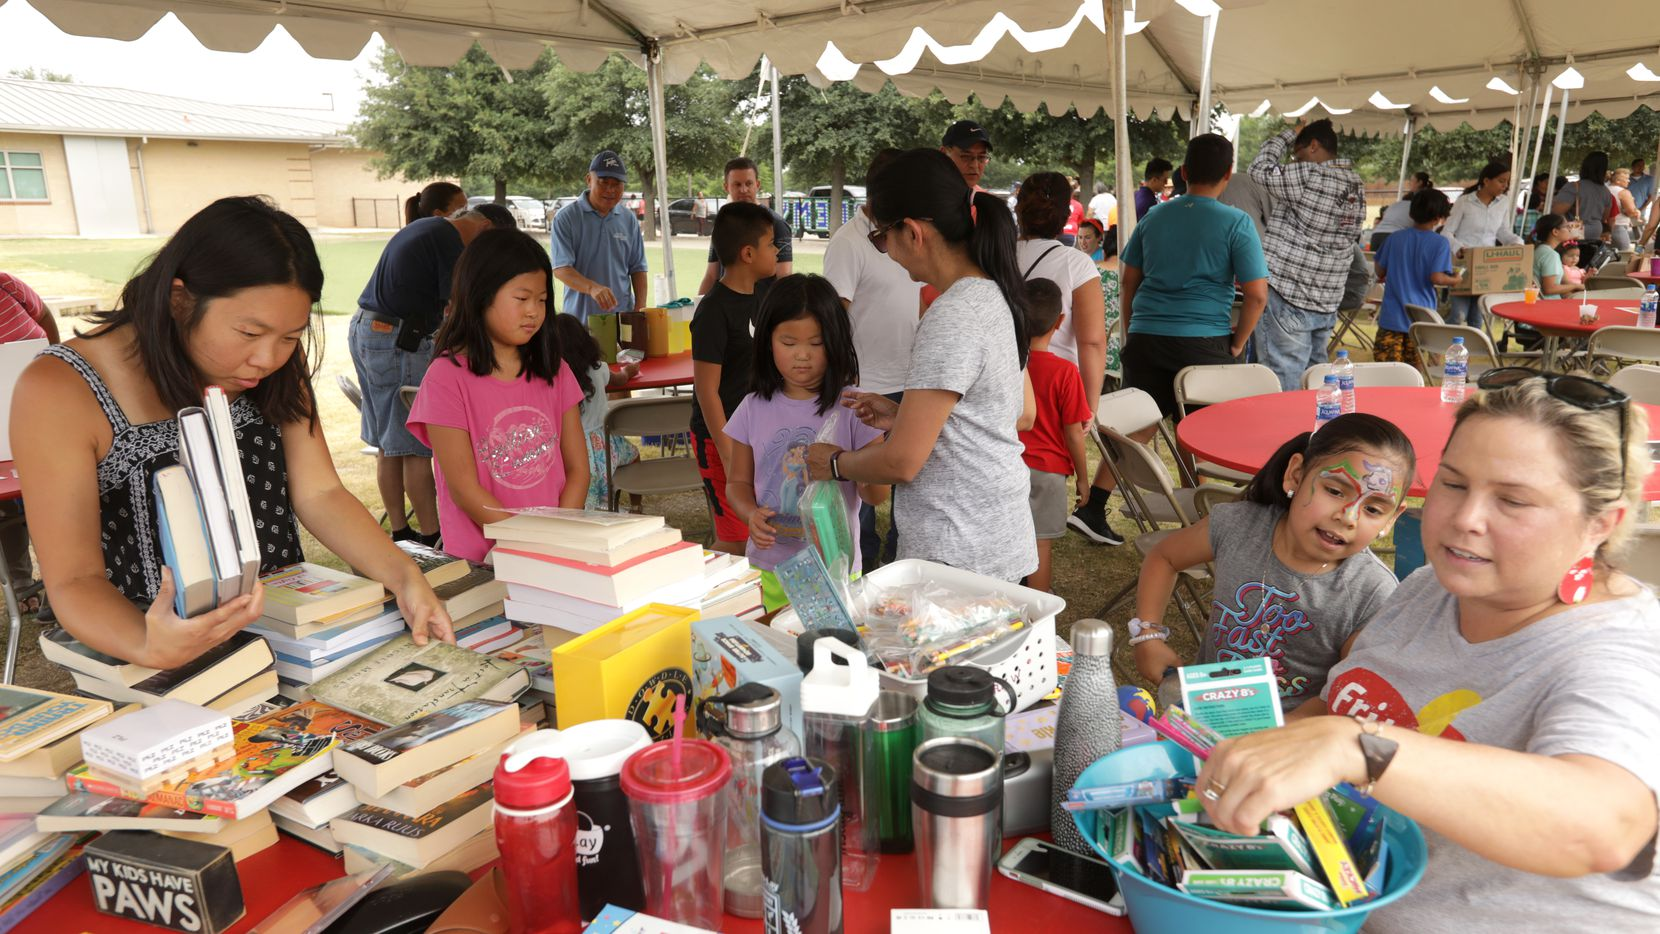 Volunteers pass out books and supplies during the Frisco Family Services Summer Lunch Grande Finale event at Bright Academy in Frisco on Aug. 2, 2019. Frisco Family Services is one of the charities involved in Give for Frisco Day.